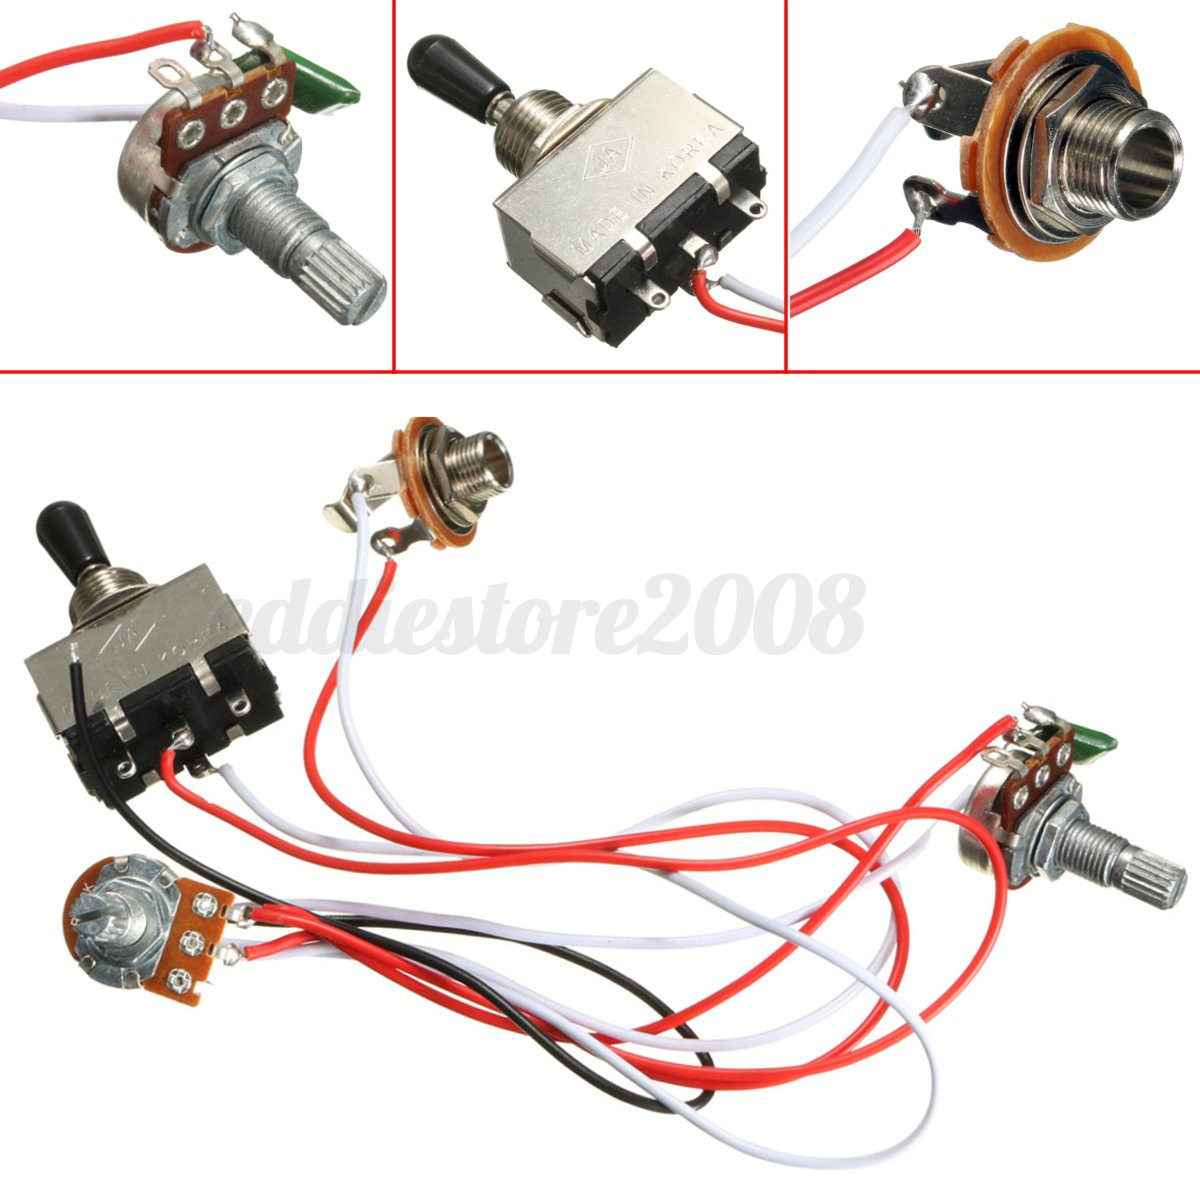 Electric Guitar 3 Way Toggle Switch Wiring Harness Kit 1 Volume Fender Stratocaster 5way Crl Cts Pots Tone 500k